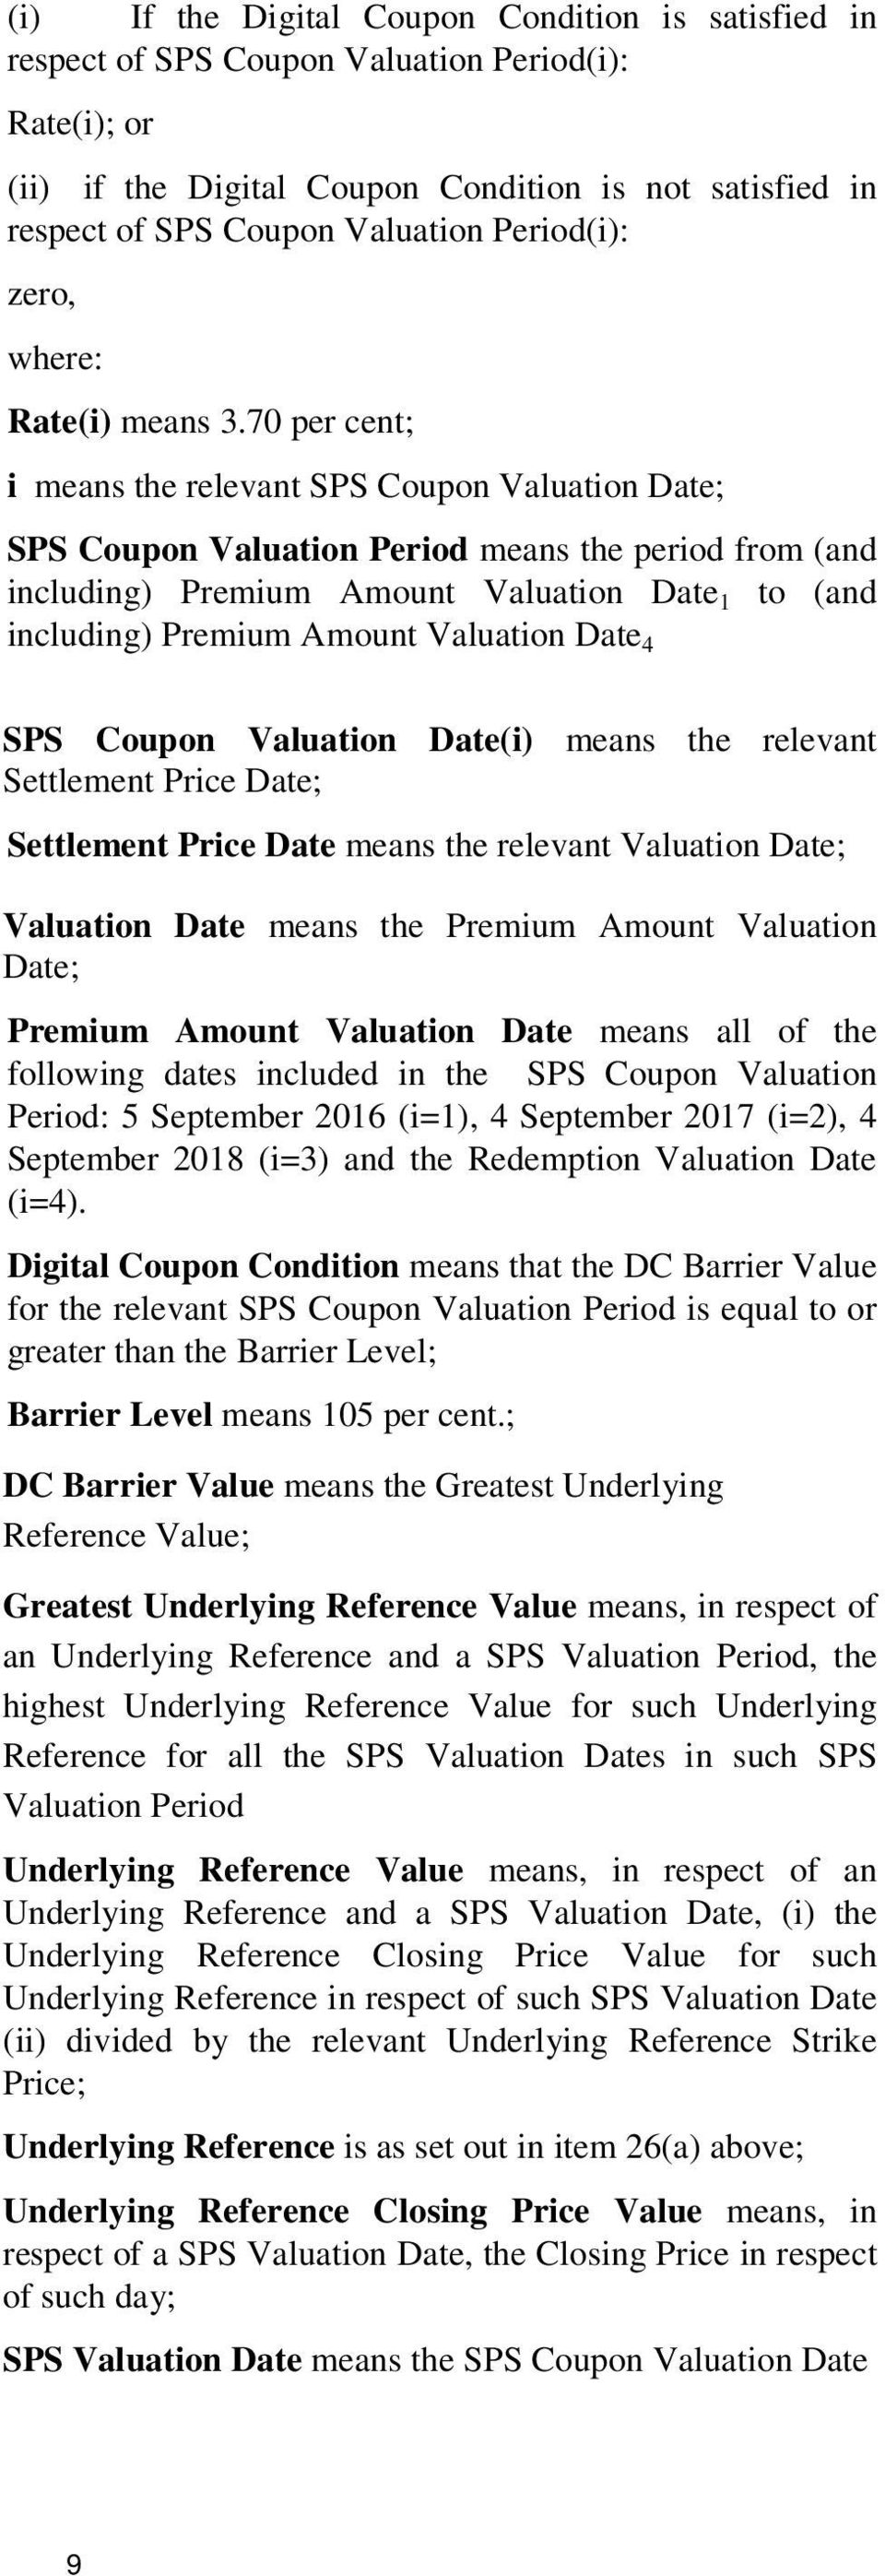 70 per cent; i means the relevant SPS Coupon Valuation Date; SPS Coupon Valuation Period means the period from (and including) Premium Amount Valuation Date 1 to (and including) Premium Amount